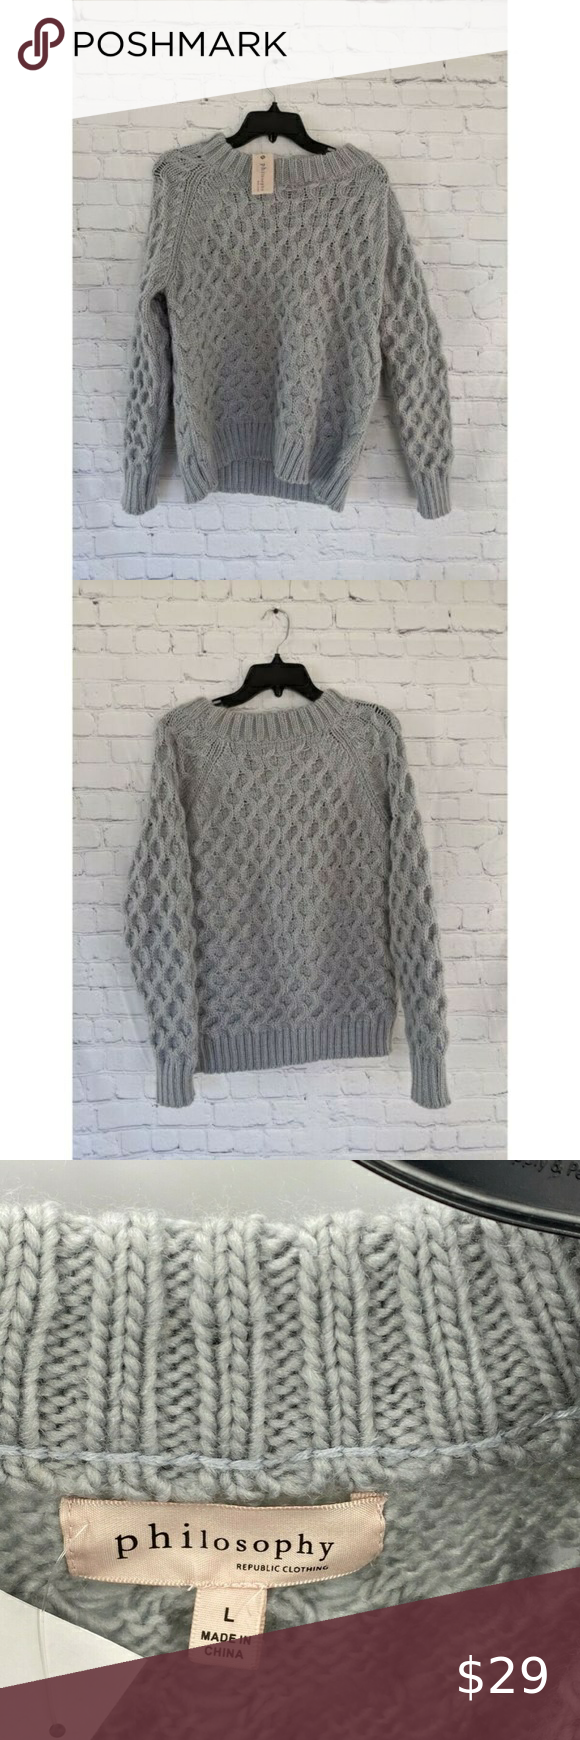 Philosophy Gray Cable Knit Permafrost Sweater L In 2021 Grey Cable Knit Leopard Print Sweater Cable Sweater